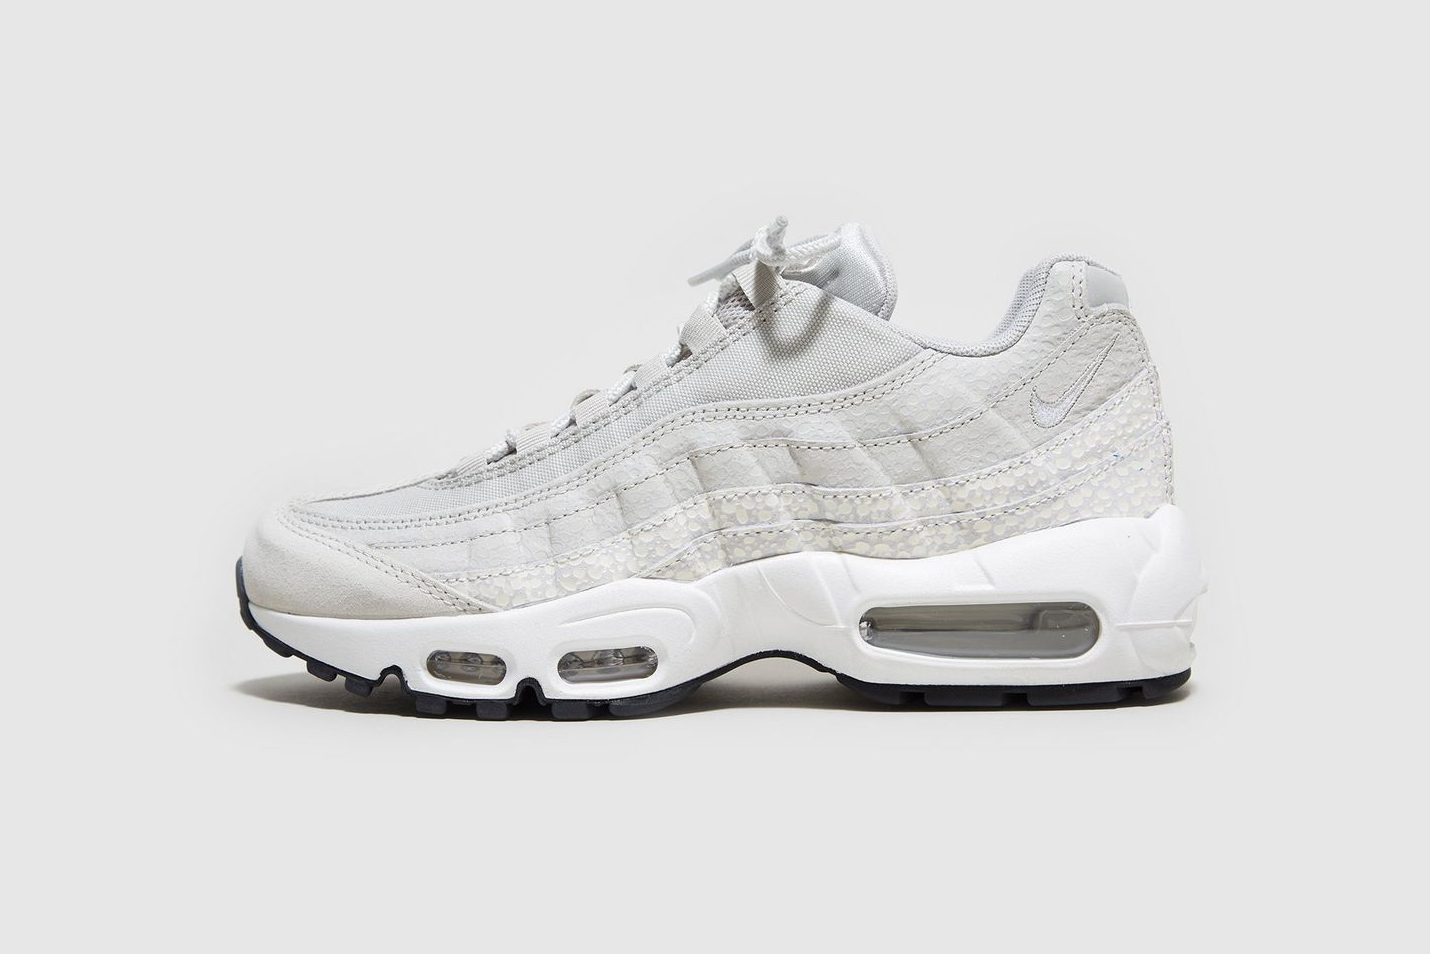 Nike Air Max 95 Off White Safari Print - 102409